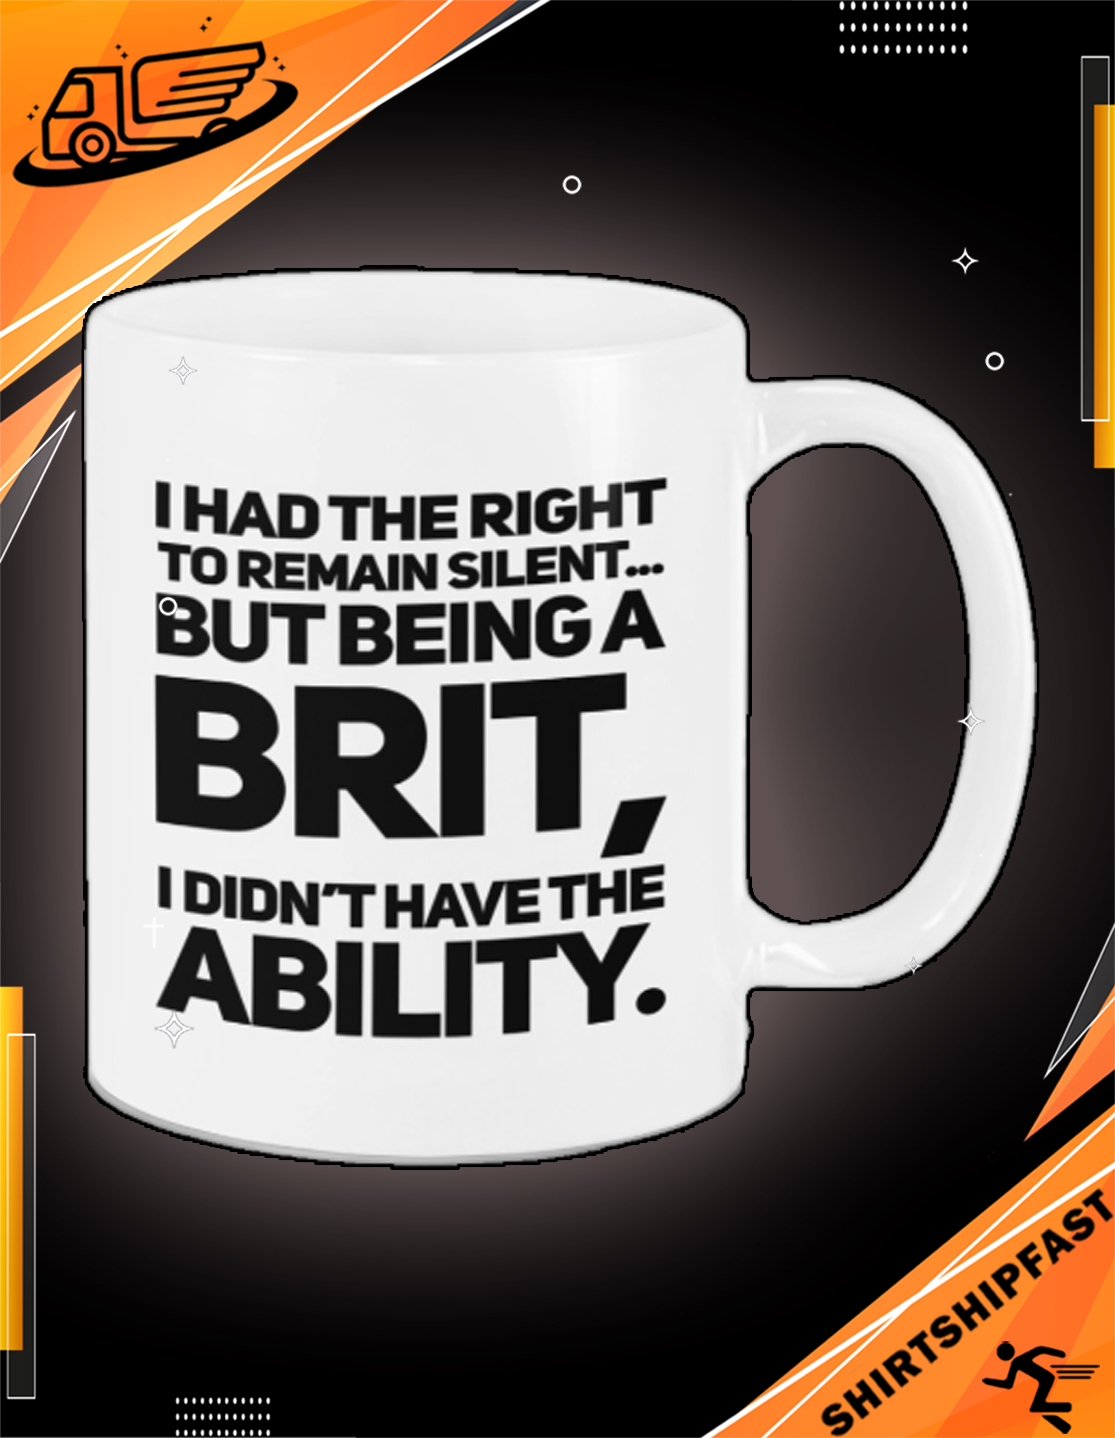 I had the right to remain silent but being a brit I didn't have the ability mug - Picture 2